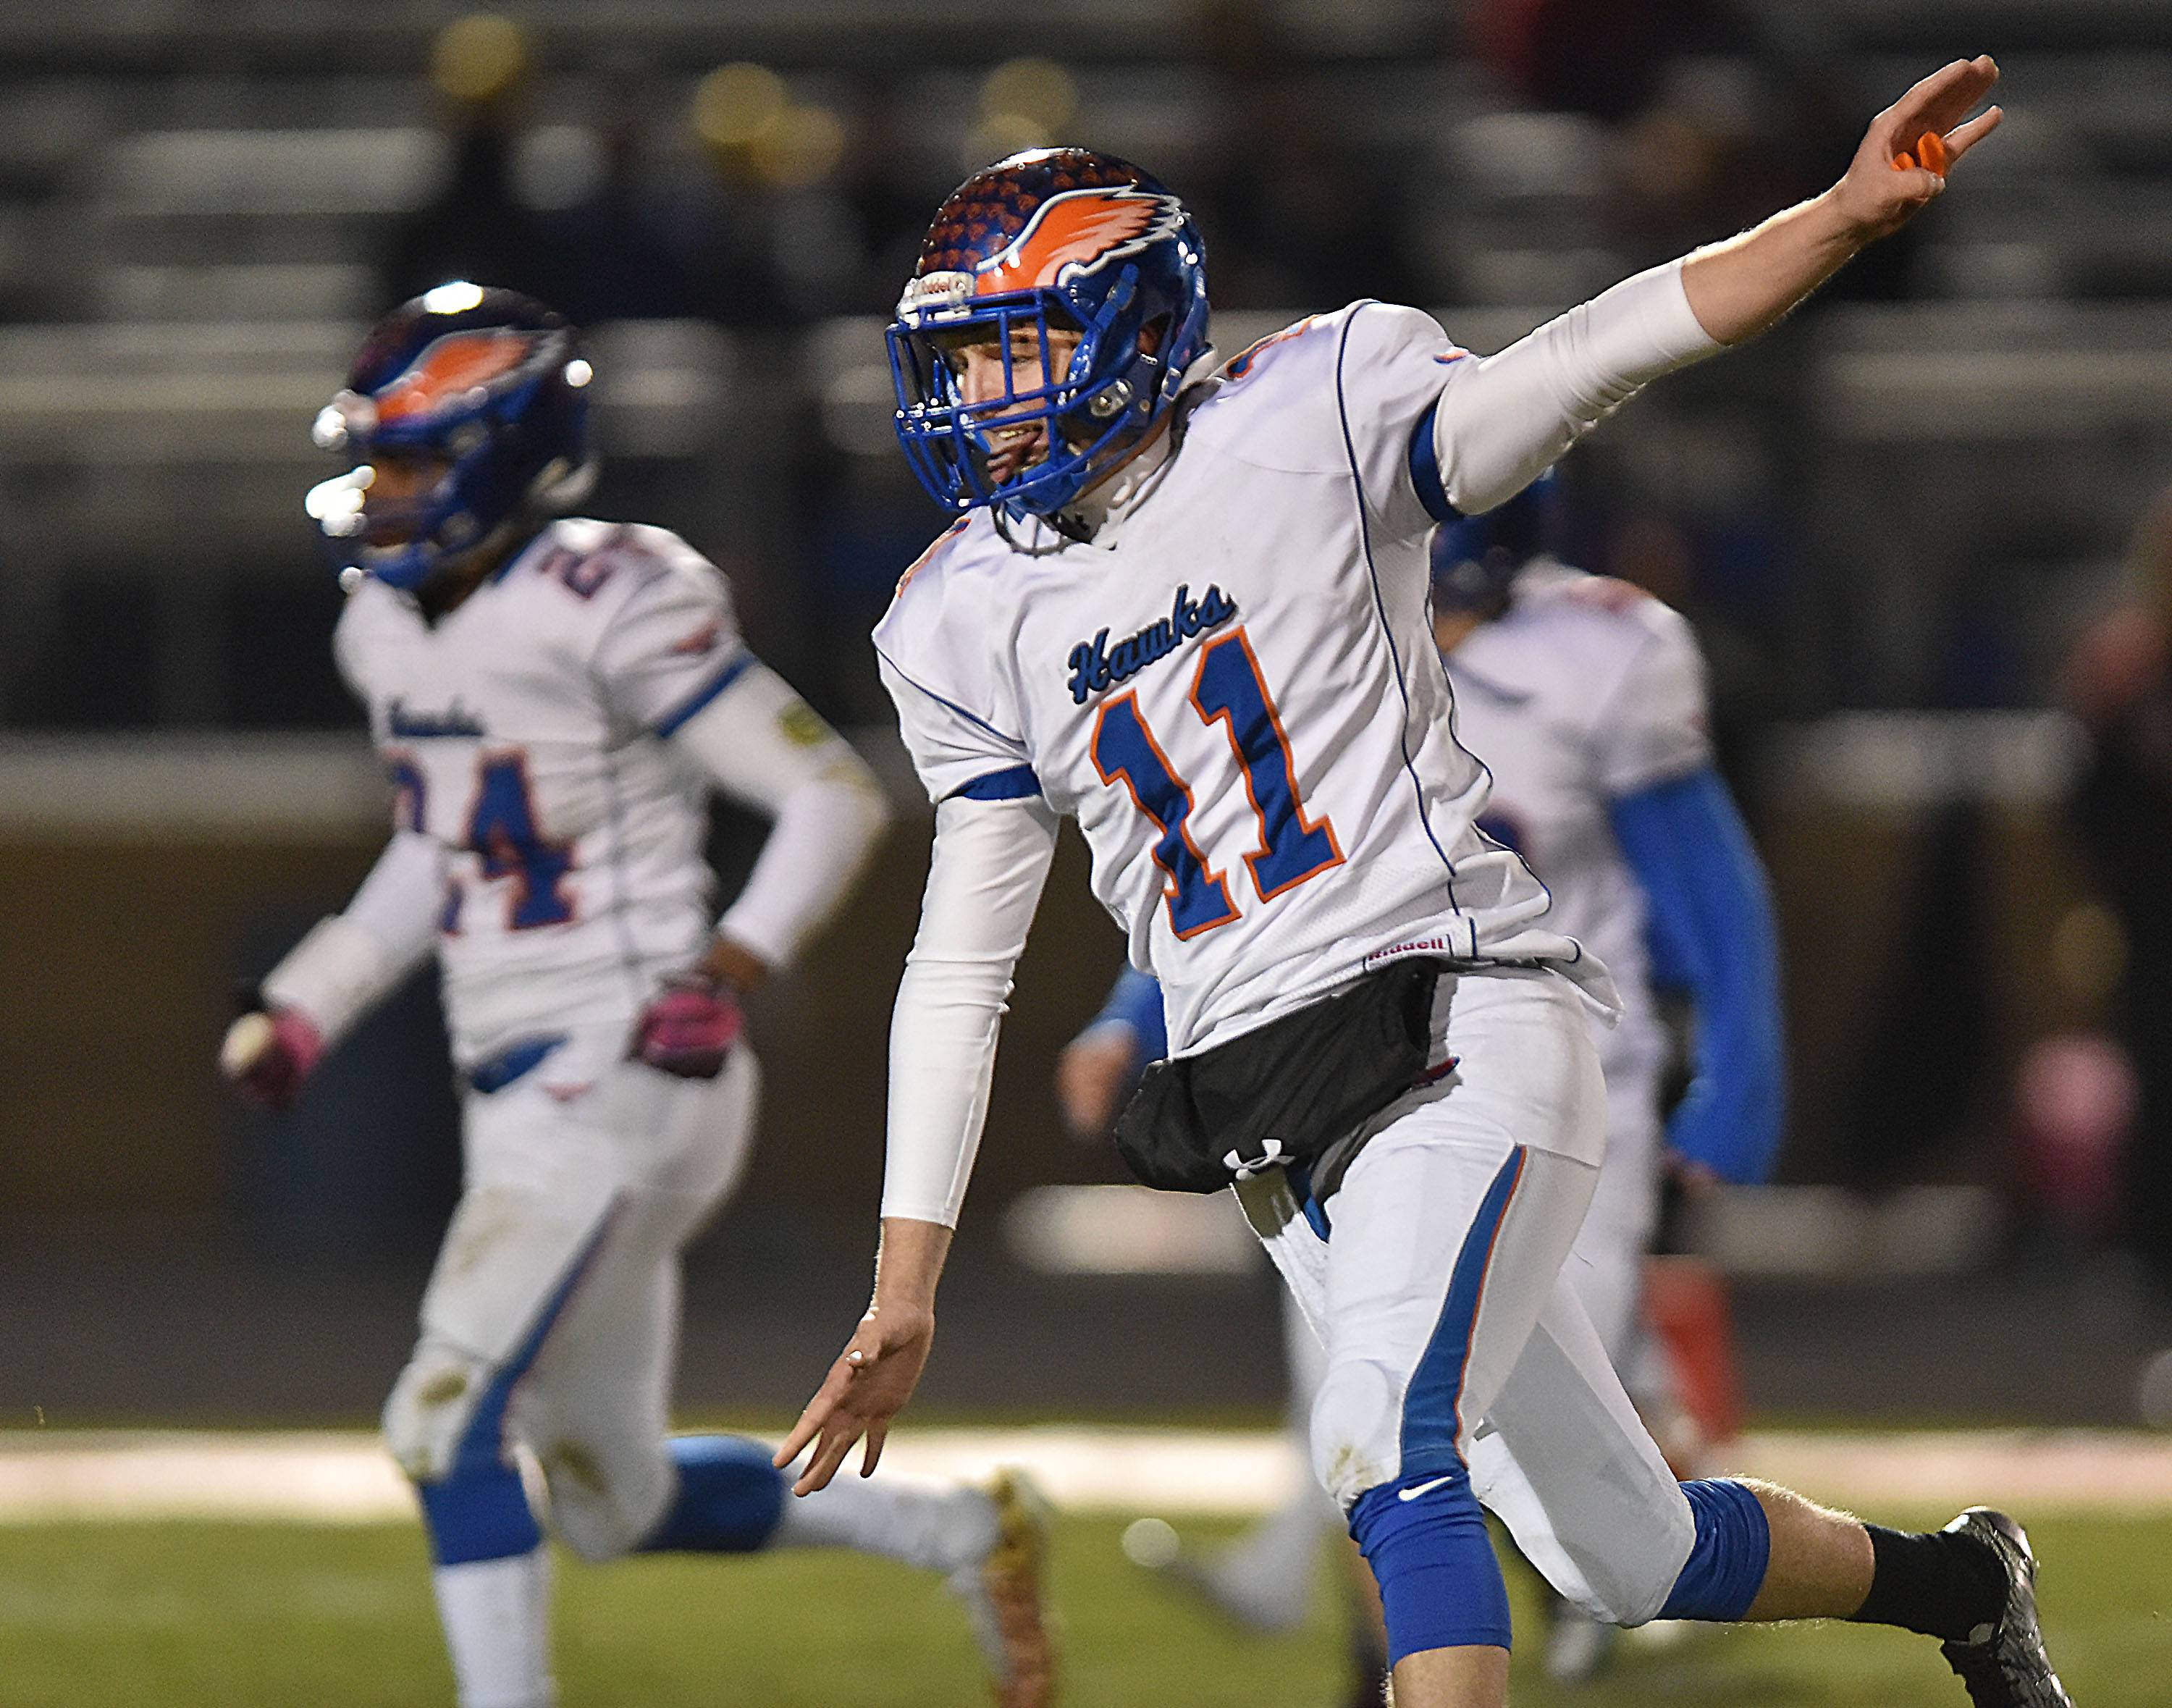 Hoffman Estates senior quarterback Austin Coalson celebrates the Hawks' win over host Belvidere North on Saturday in the Class 6A state quarterfinals.